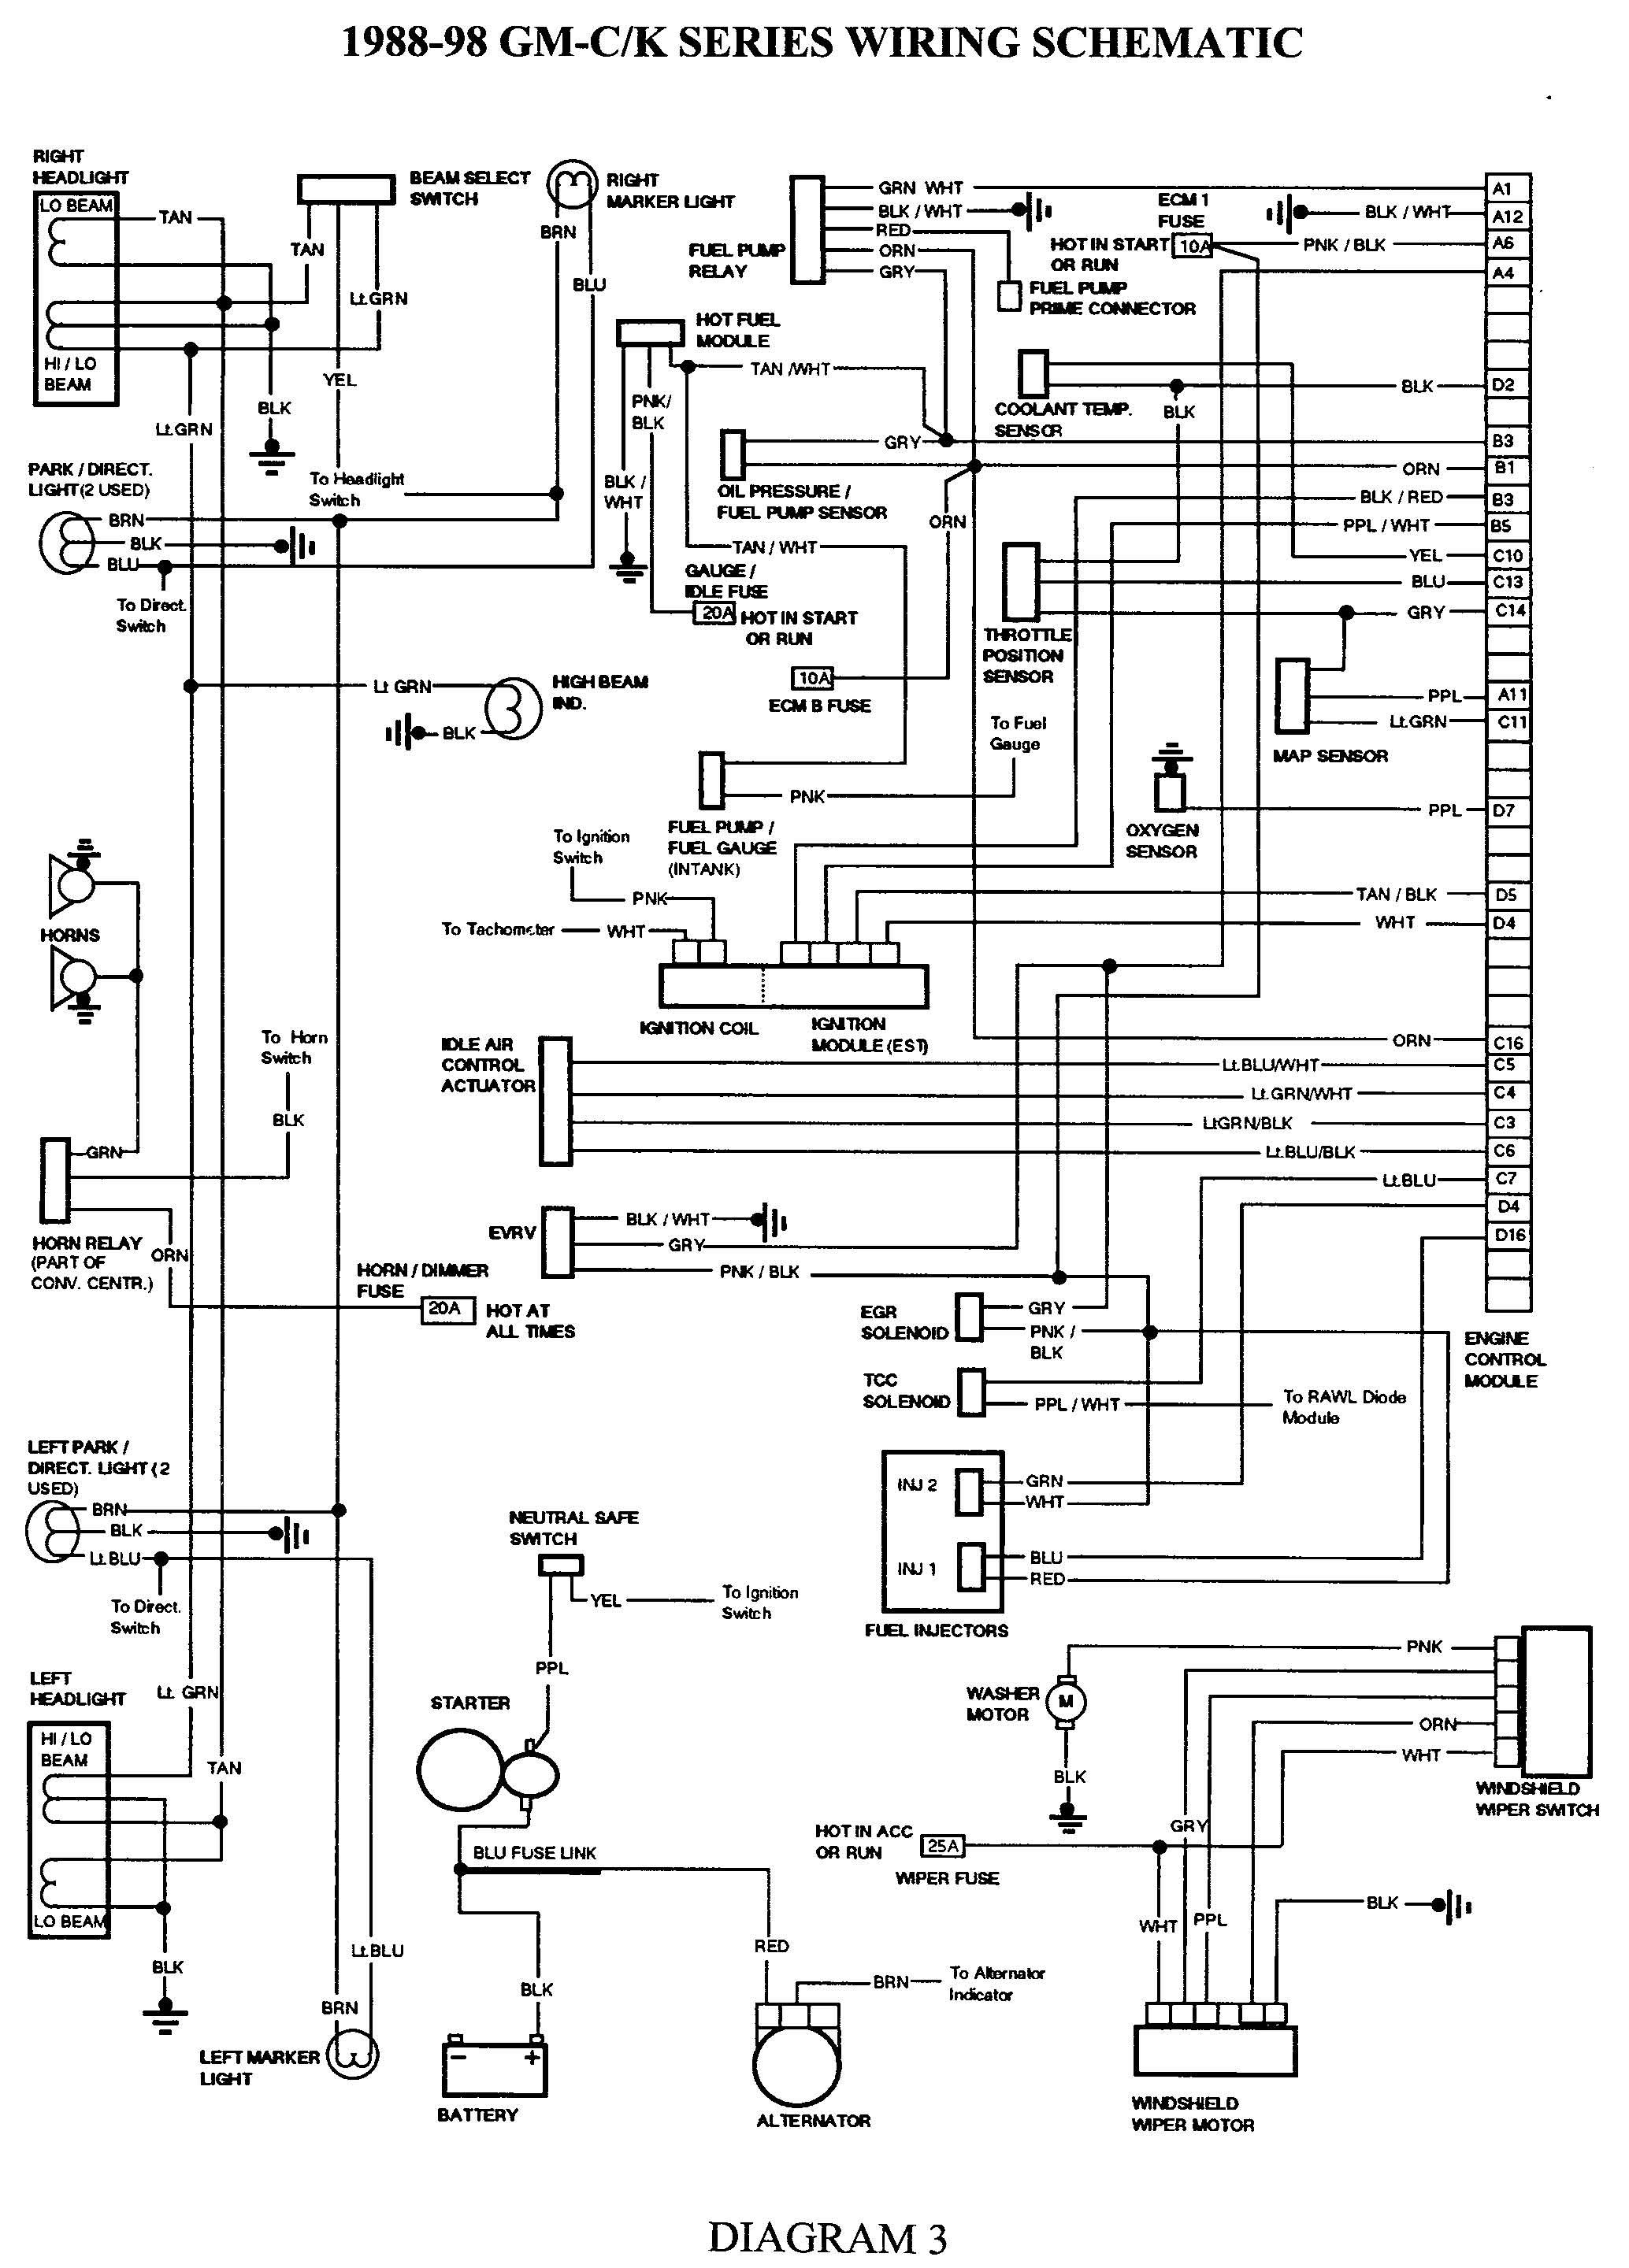 speedometer wire diagram 94 gmc auto electrical wiring diagram rh doesitsuit me 2003 Silverado Wiring Schematics 2003 Silverado Wiring Schematics